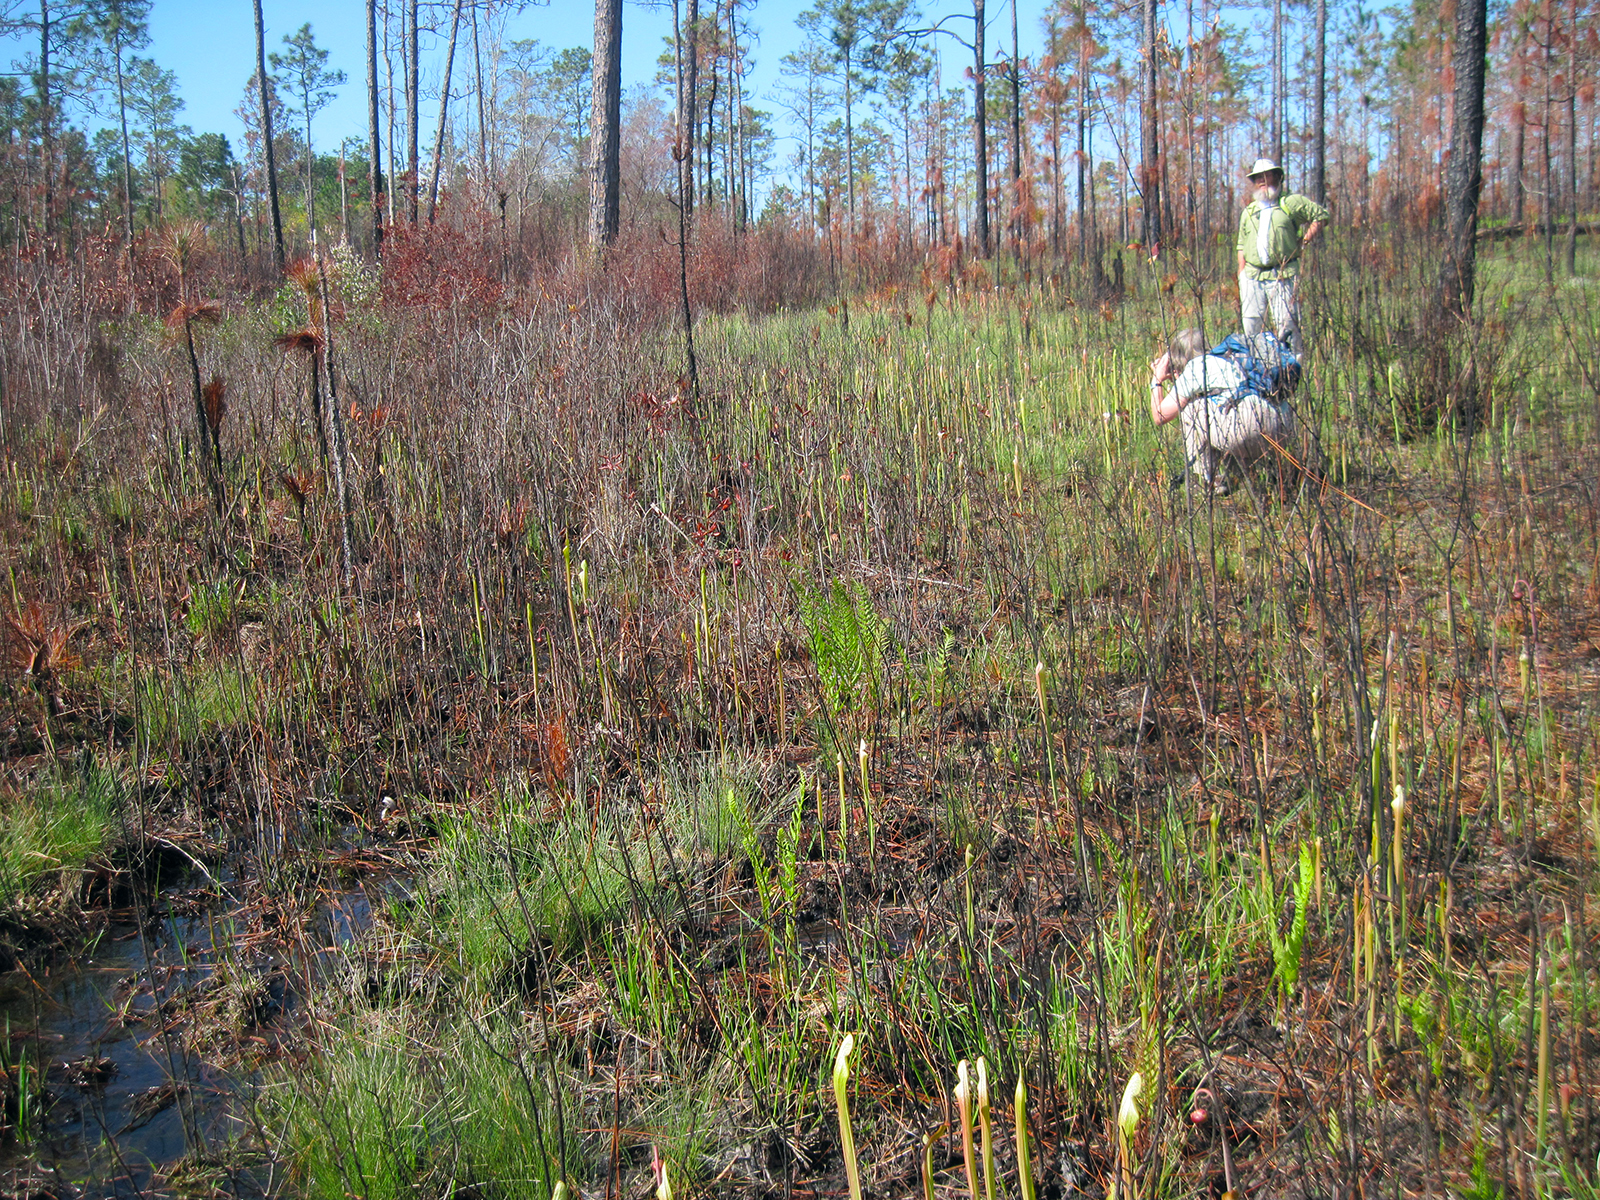 The pitcher plant bog below the knob